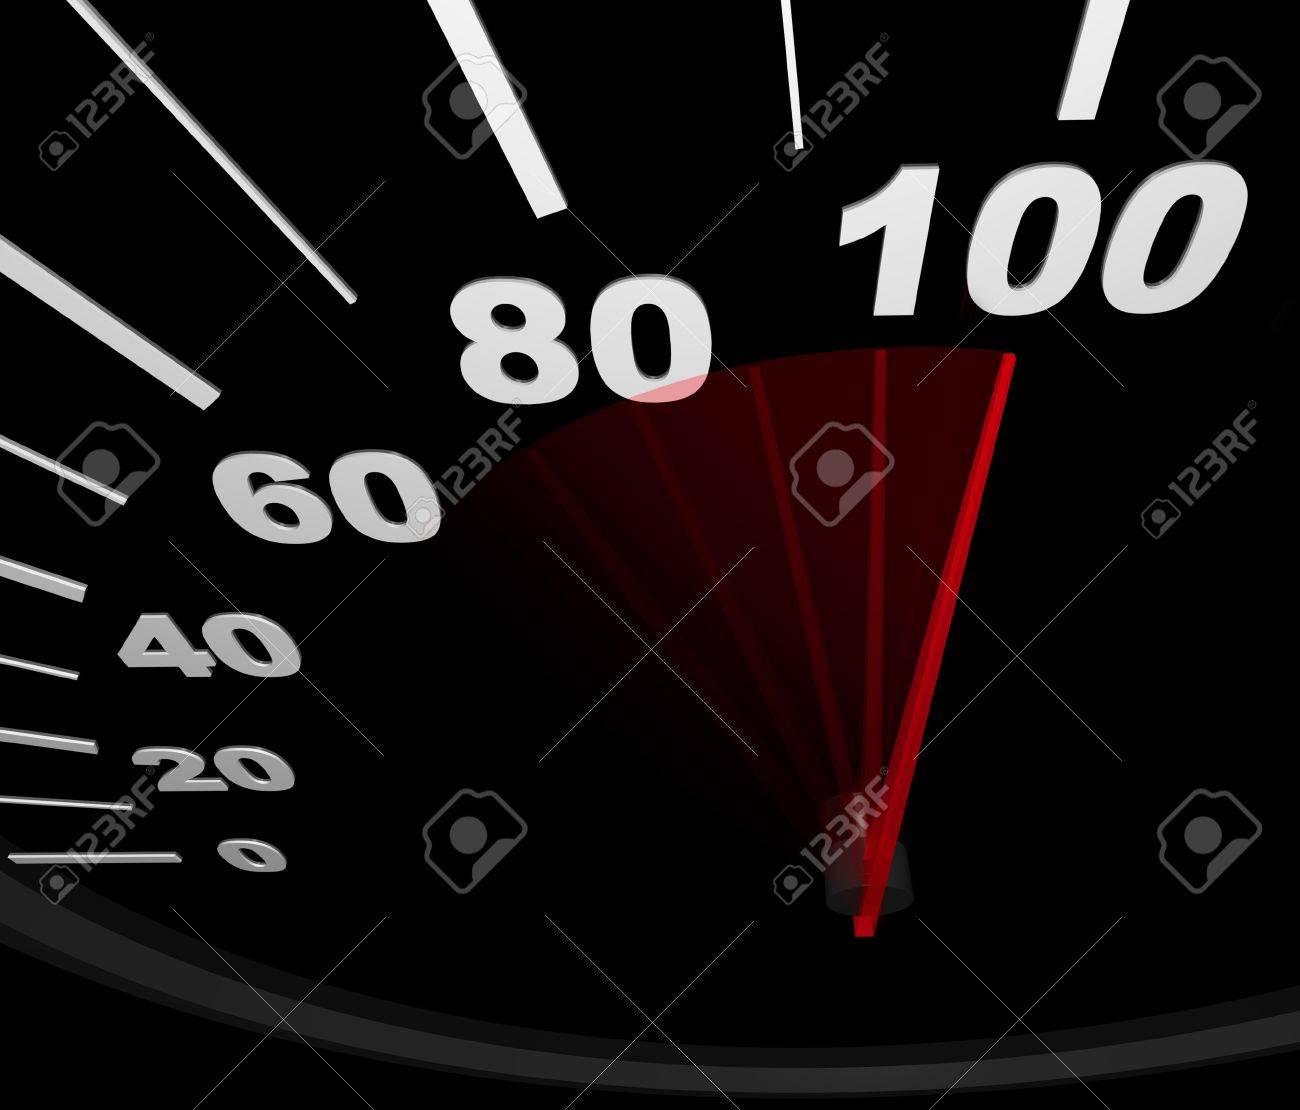 A Speedometer With Red Needle Pointing To 100 Miles Per Hour Stock ...